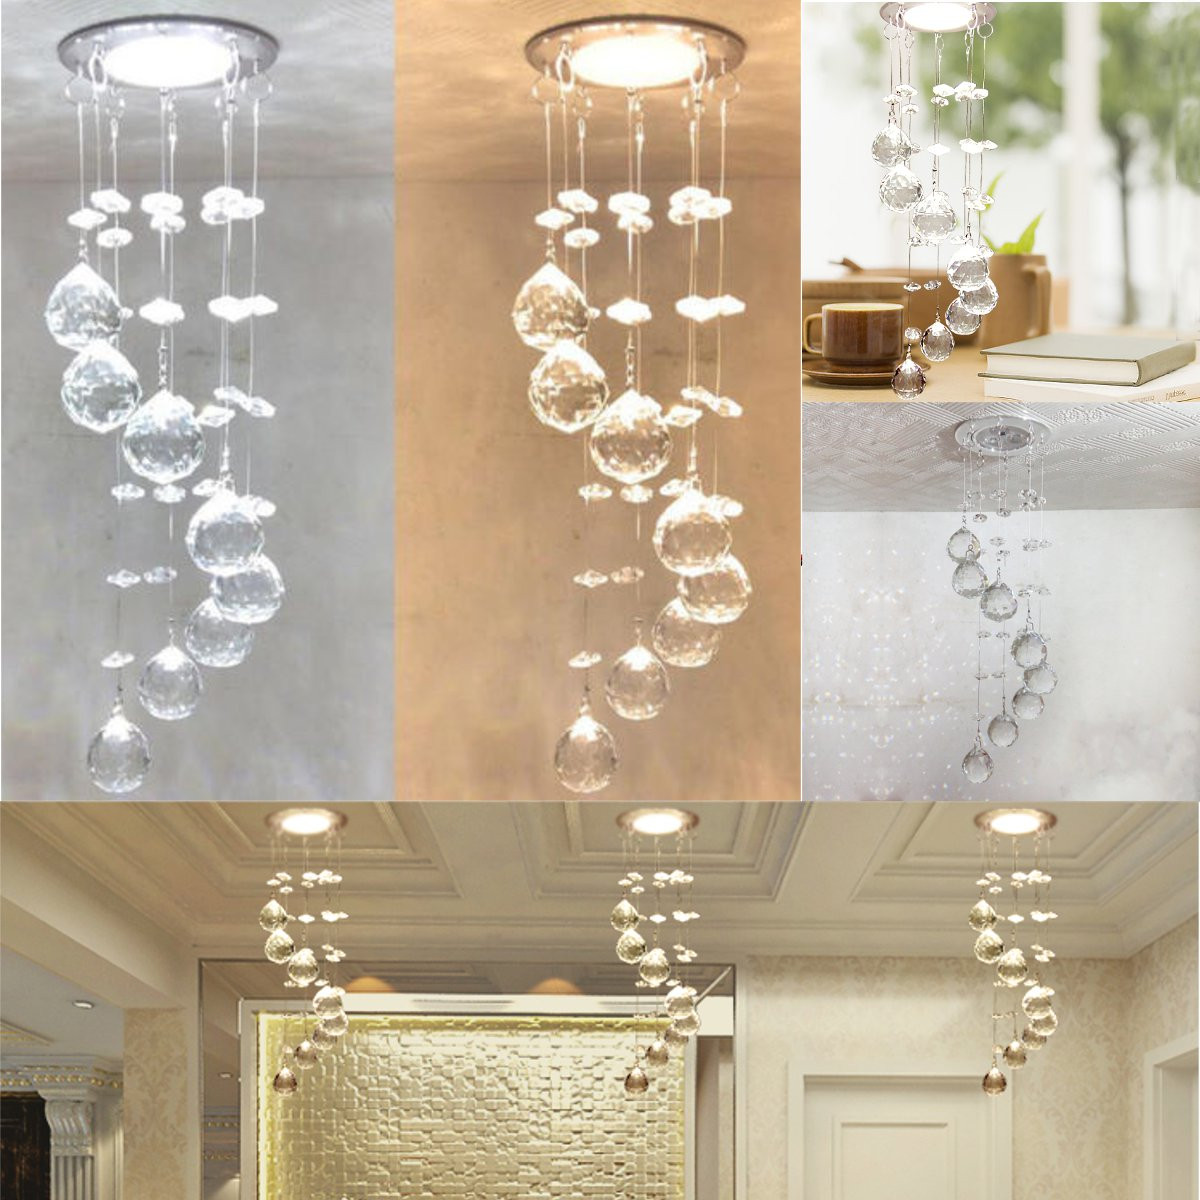 Buy 3W LED Crystal Concealed Ceiling Light Small Chandelier Lamp Pendant Hallway